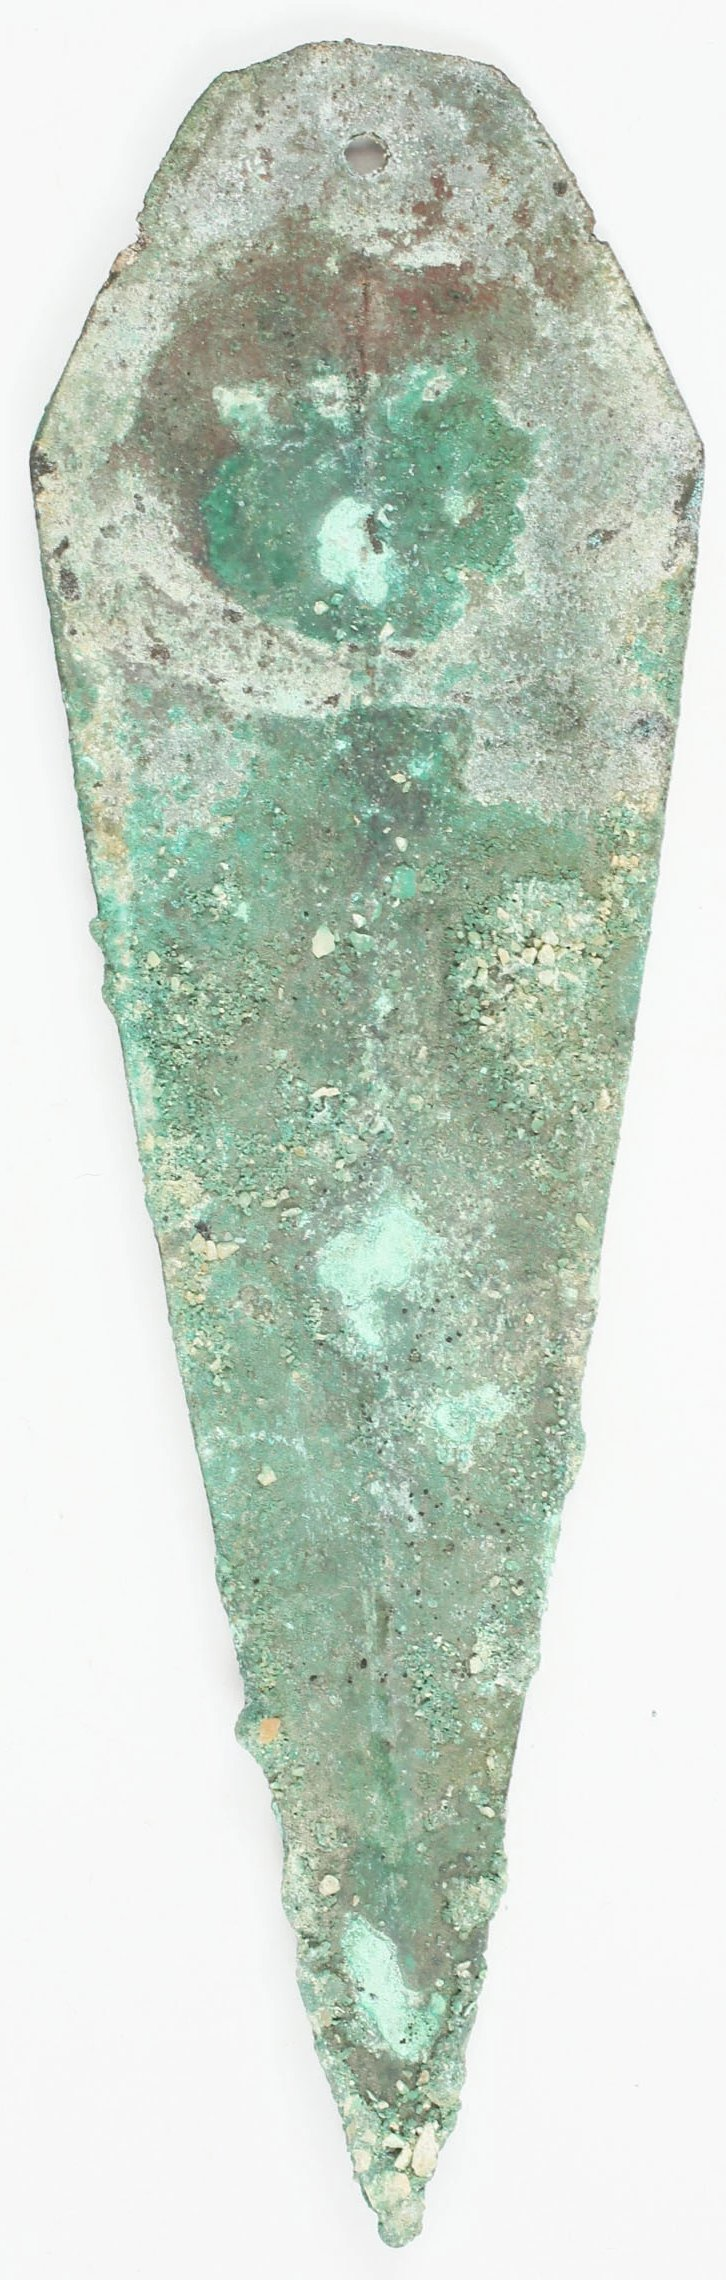 LURISTAN BRONZE KNIFE OR DAGGER C.1000-700 BC - Fagan Arms